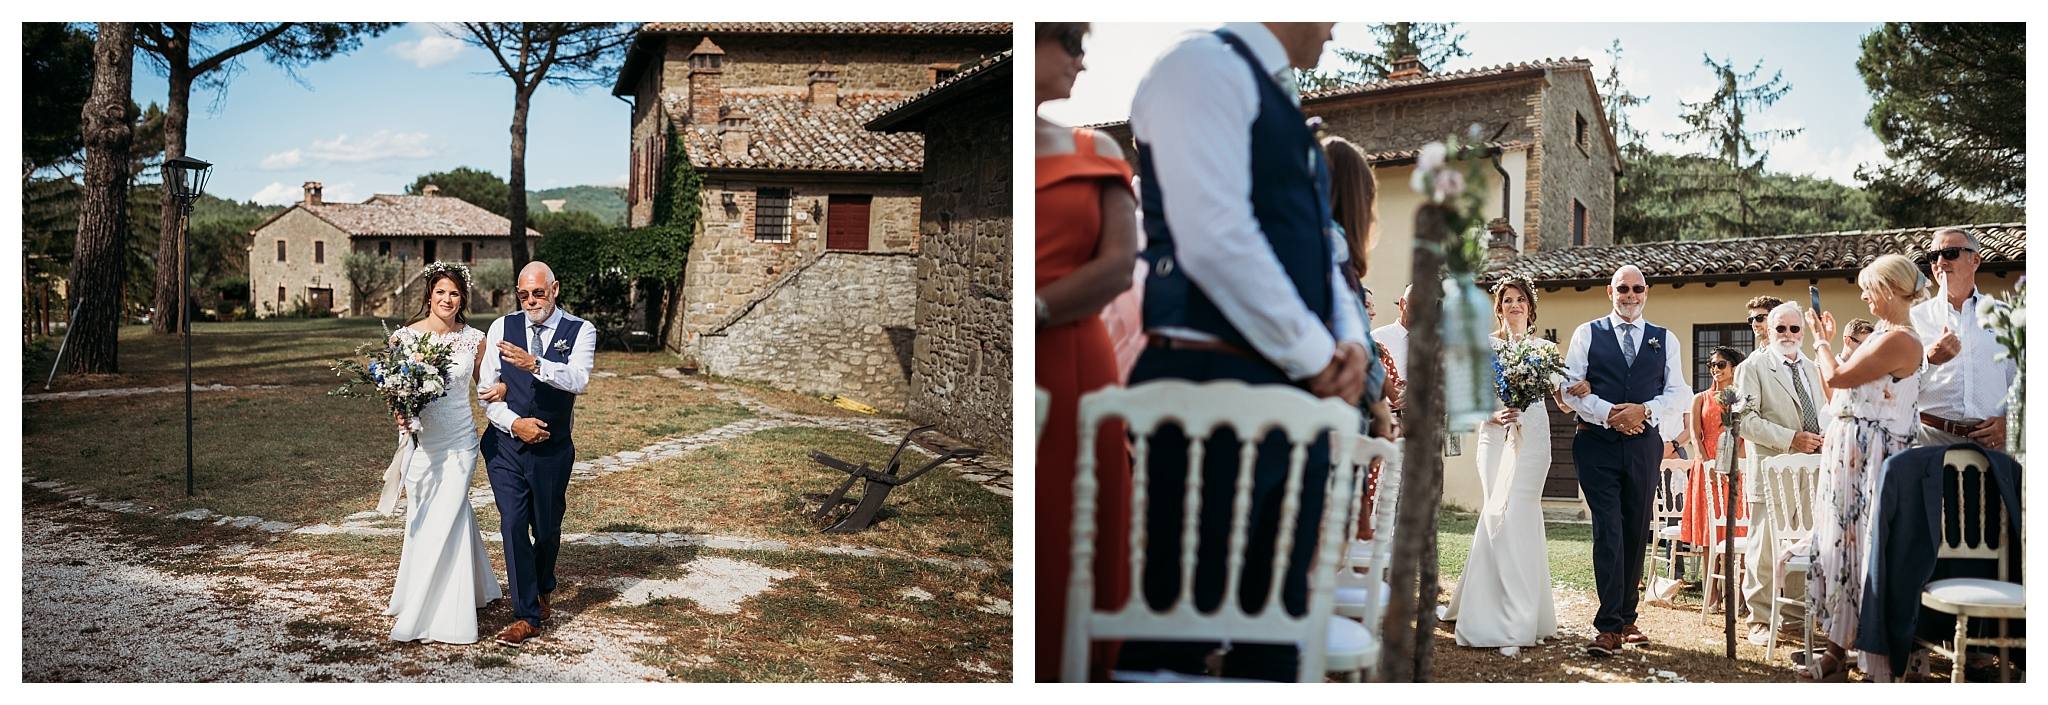 Bride with her father going to the ceremony at Casa Bruciata, Umbria